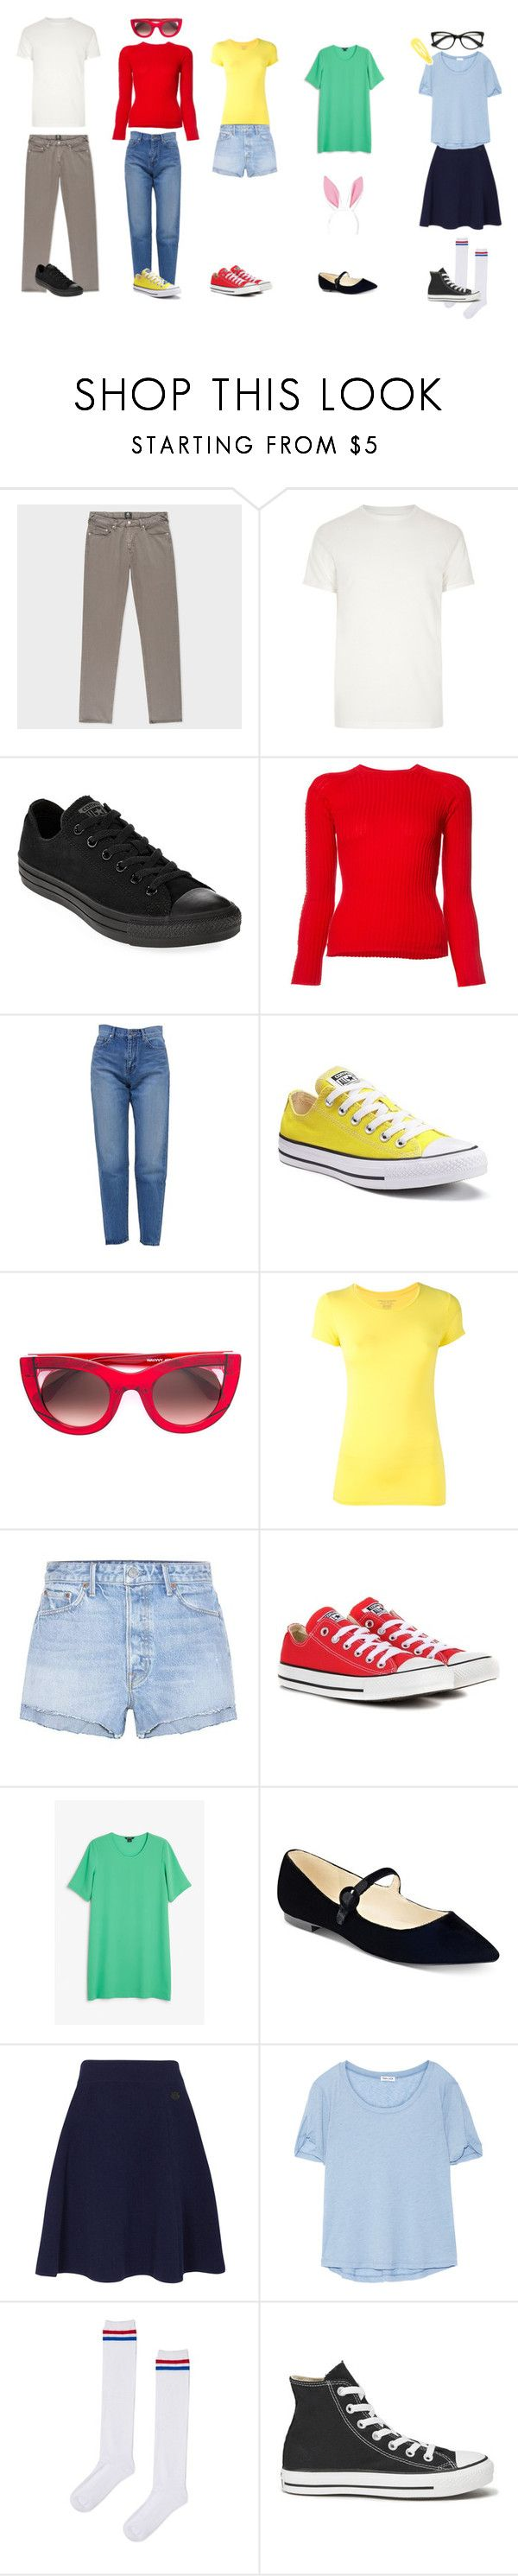 """Bobs Burgers"" by sunshinelarry ❤ liked on Polyvore featuring River Island, Converse, Alexander Wang, Yves Saint Laurent, Thierry Lasry, Majestic Filatures, GRLFRND, Monki, Marc Fisher and Kenzo"